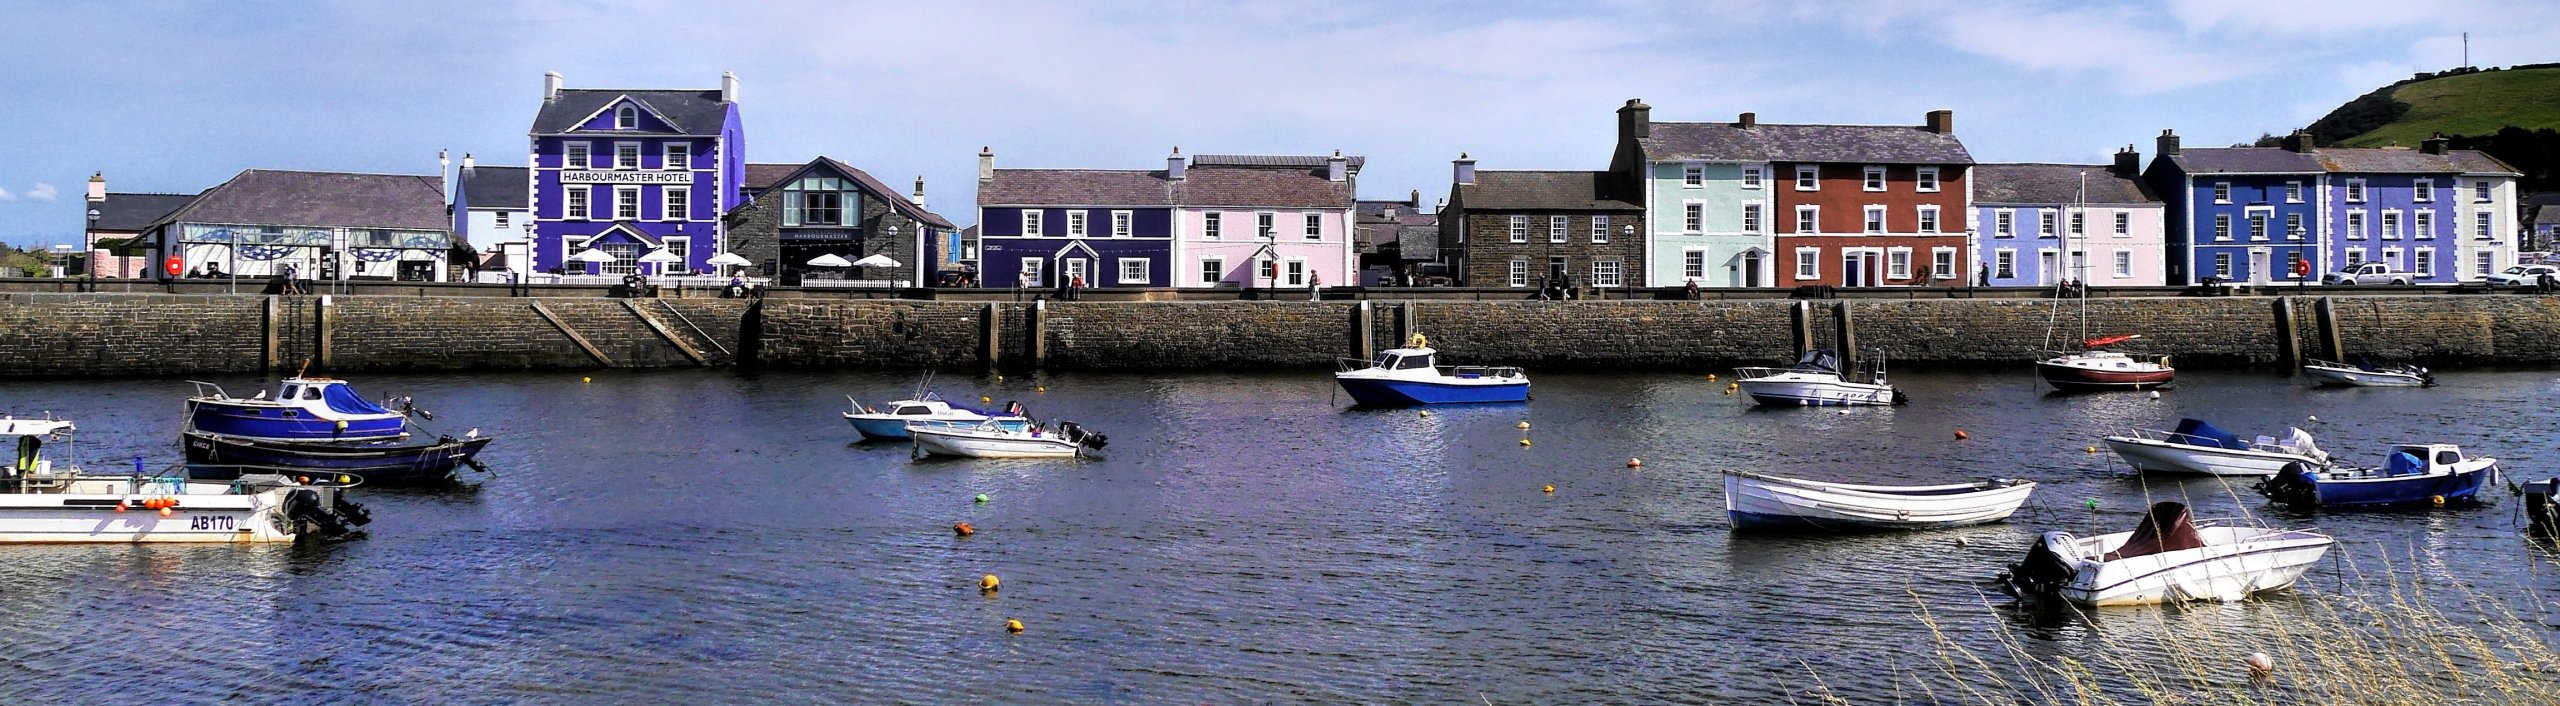 Purple, burgundy, cream, light green and brown painted houses on harbour side in Aberaeron, Wales, UK